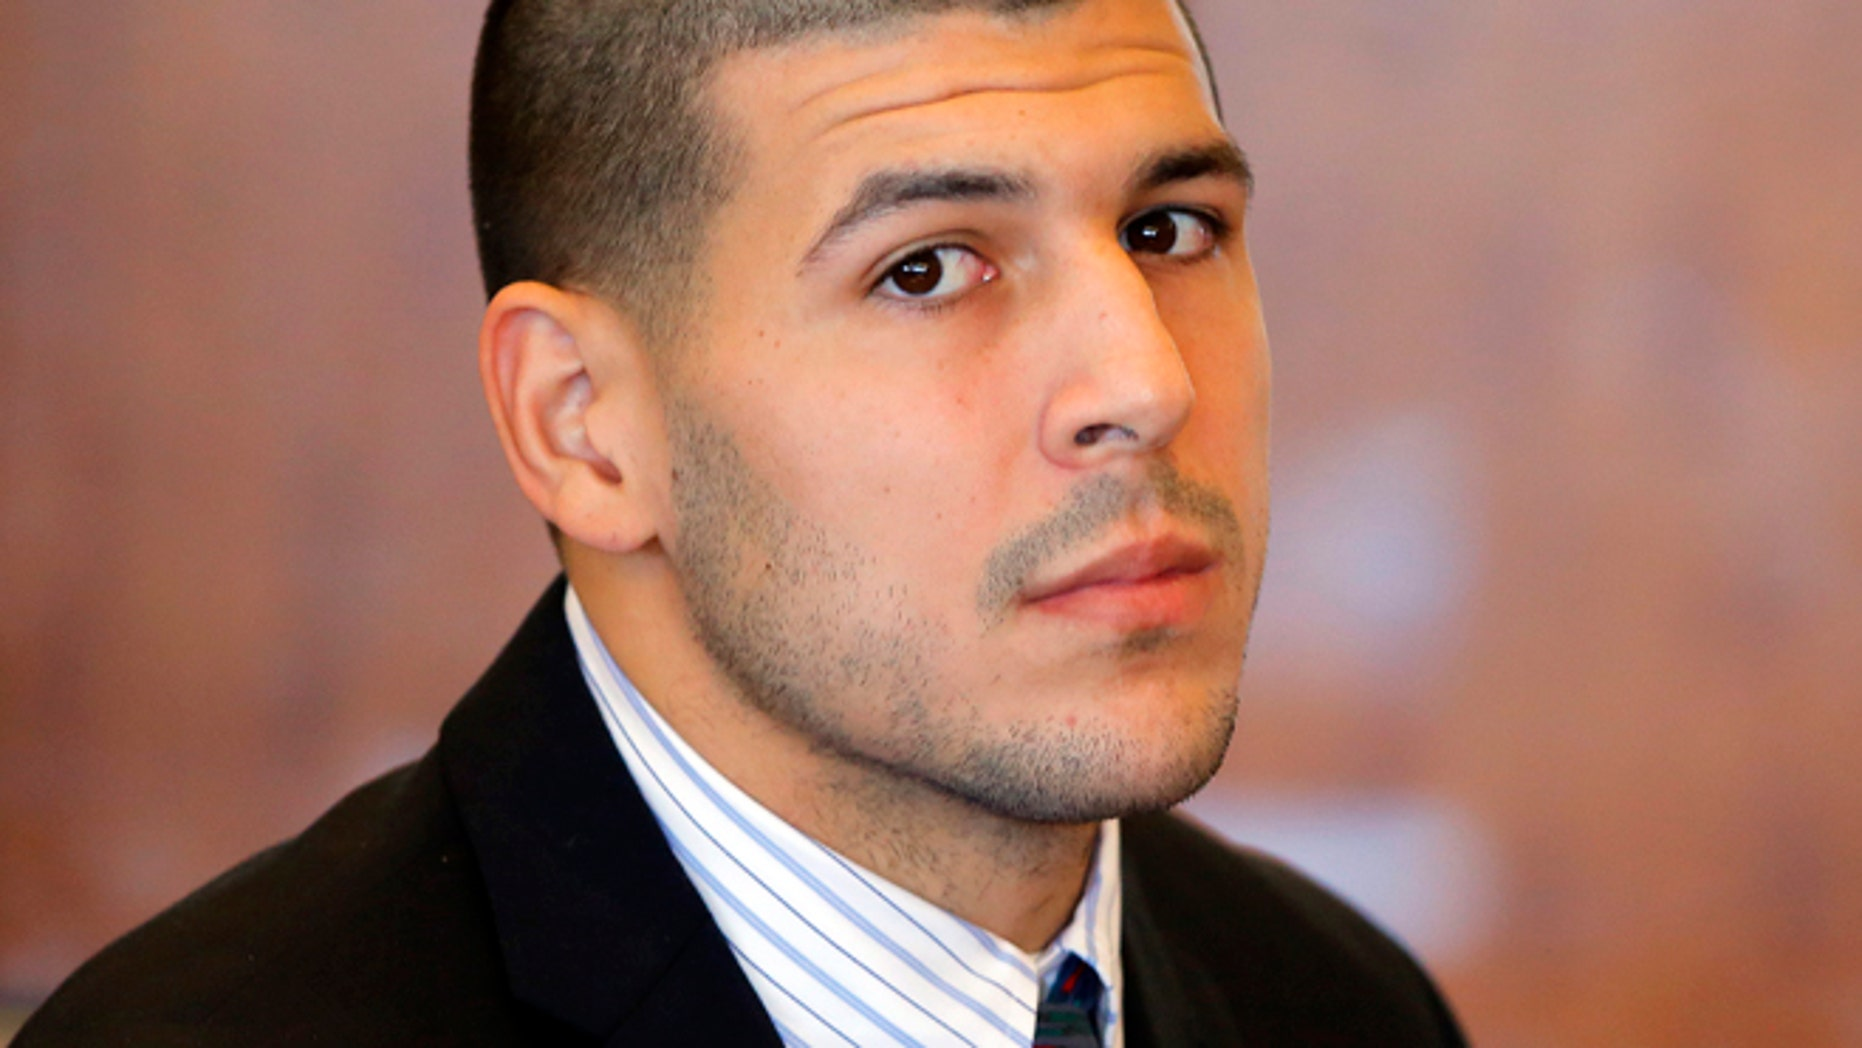 FILE 2013: Former New England Patriots NFL football player Aaron Hernandez attends a pretrial court hearing in Fall River, Mass. Hernandez is set to be arraigned on murder charges for allegedly ambushing and gunning down two men in 2012 after a chance encounter inside a Boston nightclub.